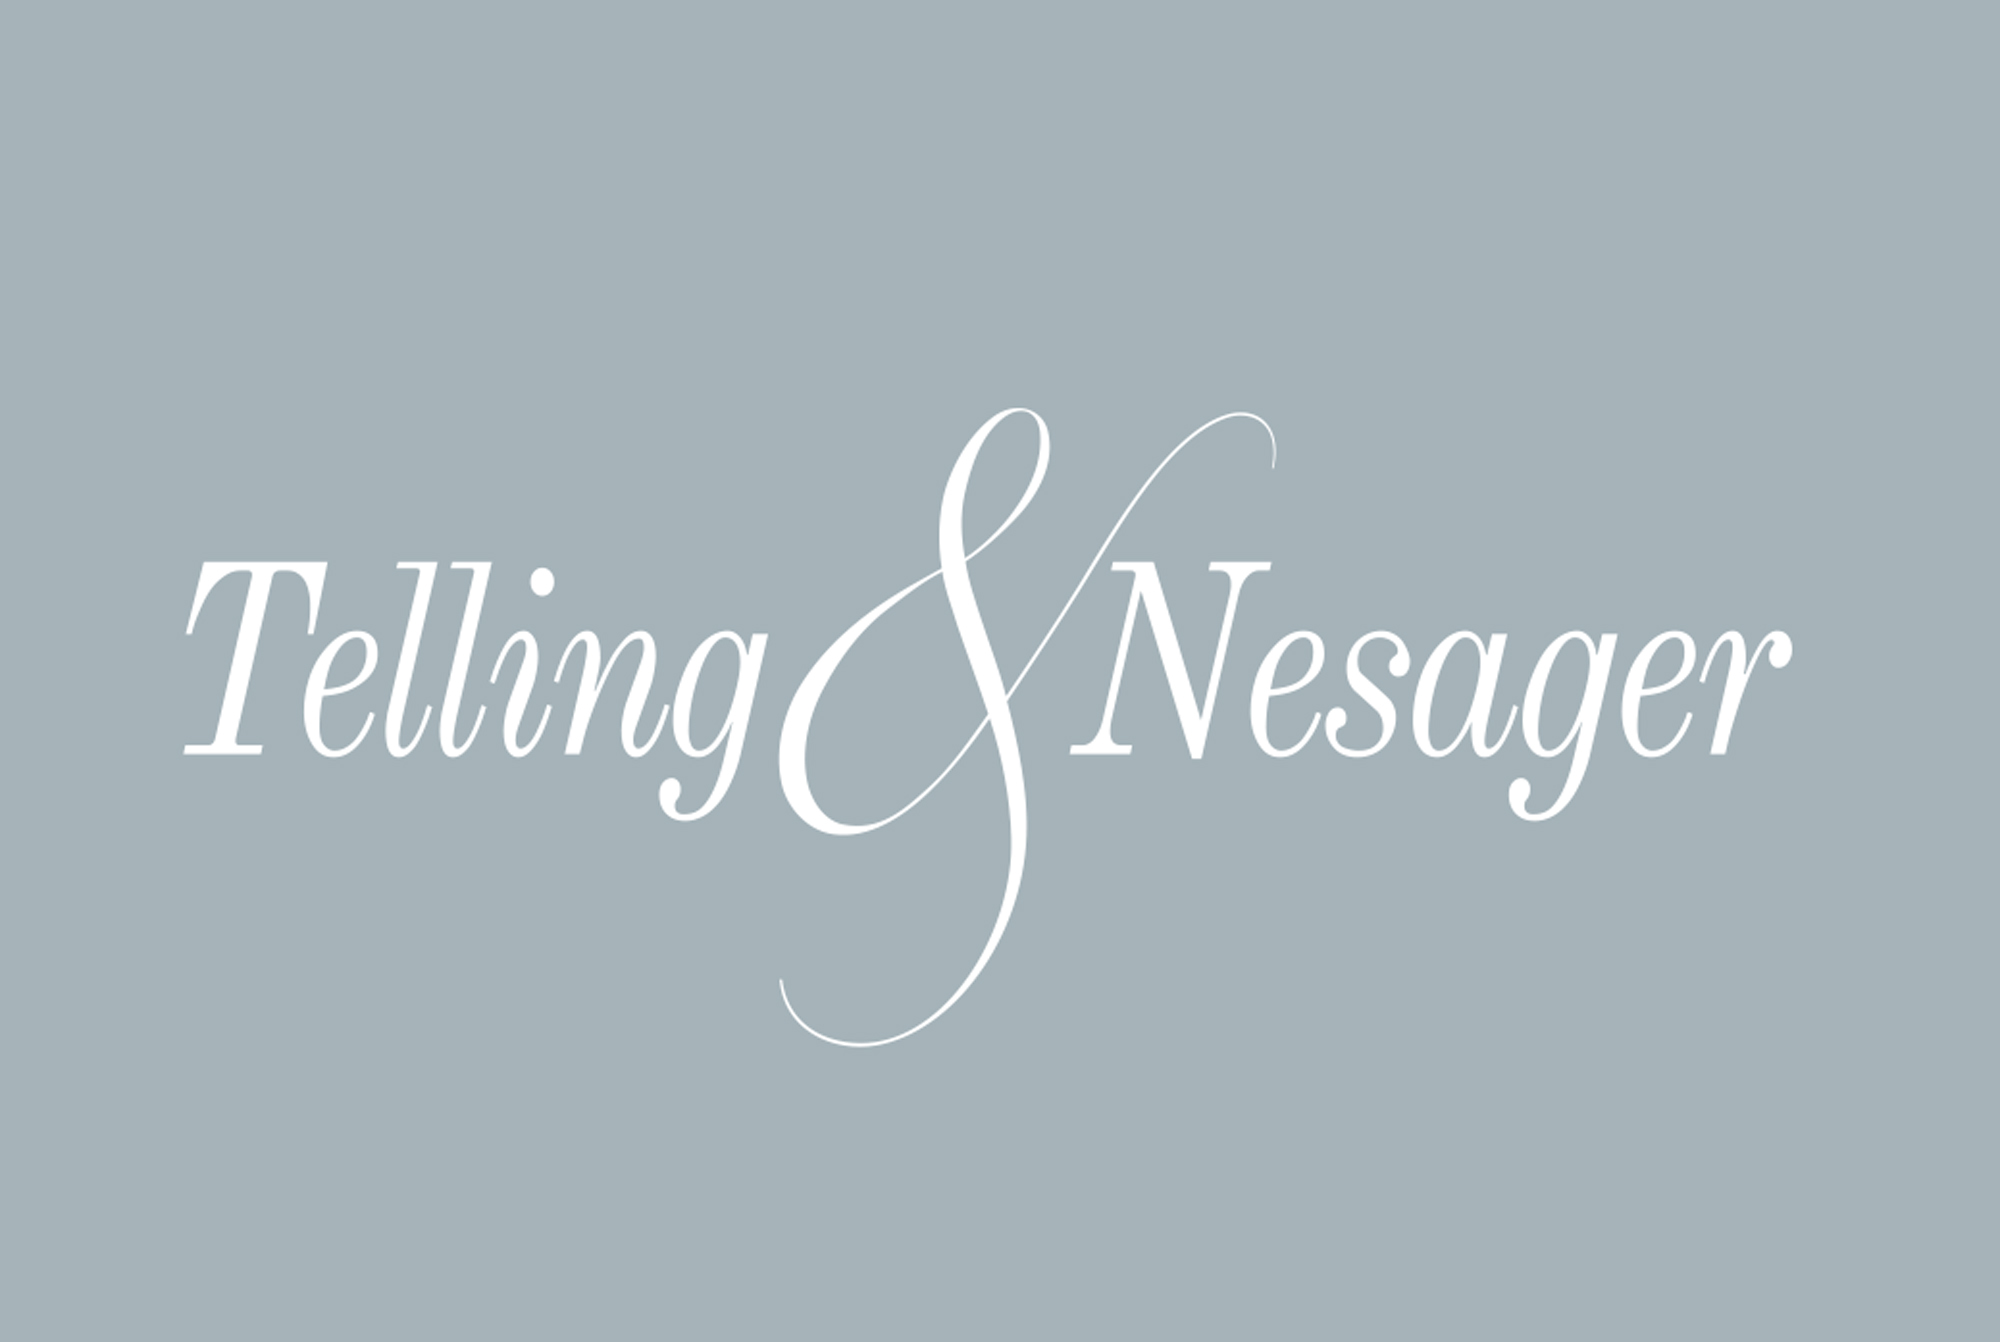 TELLING & NESAGER CONSULTANCY GAINS A FURTHER TWO NEW PARTNERS